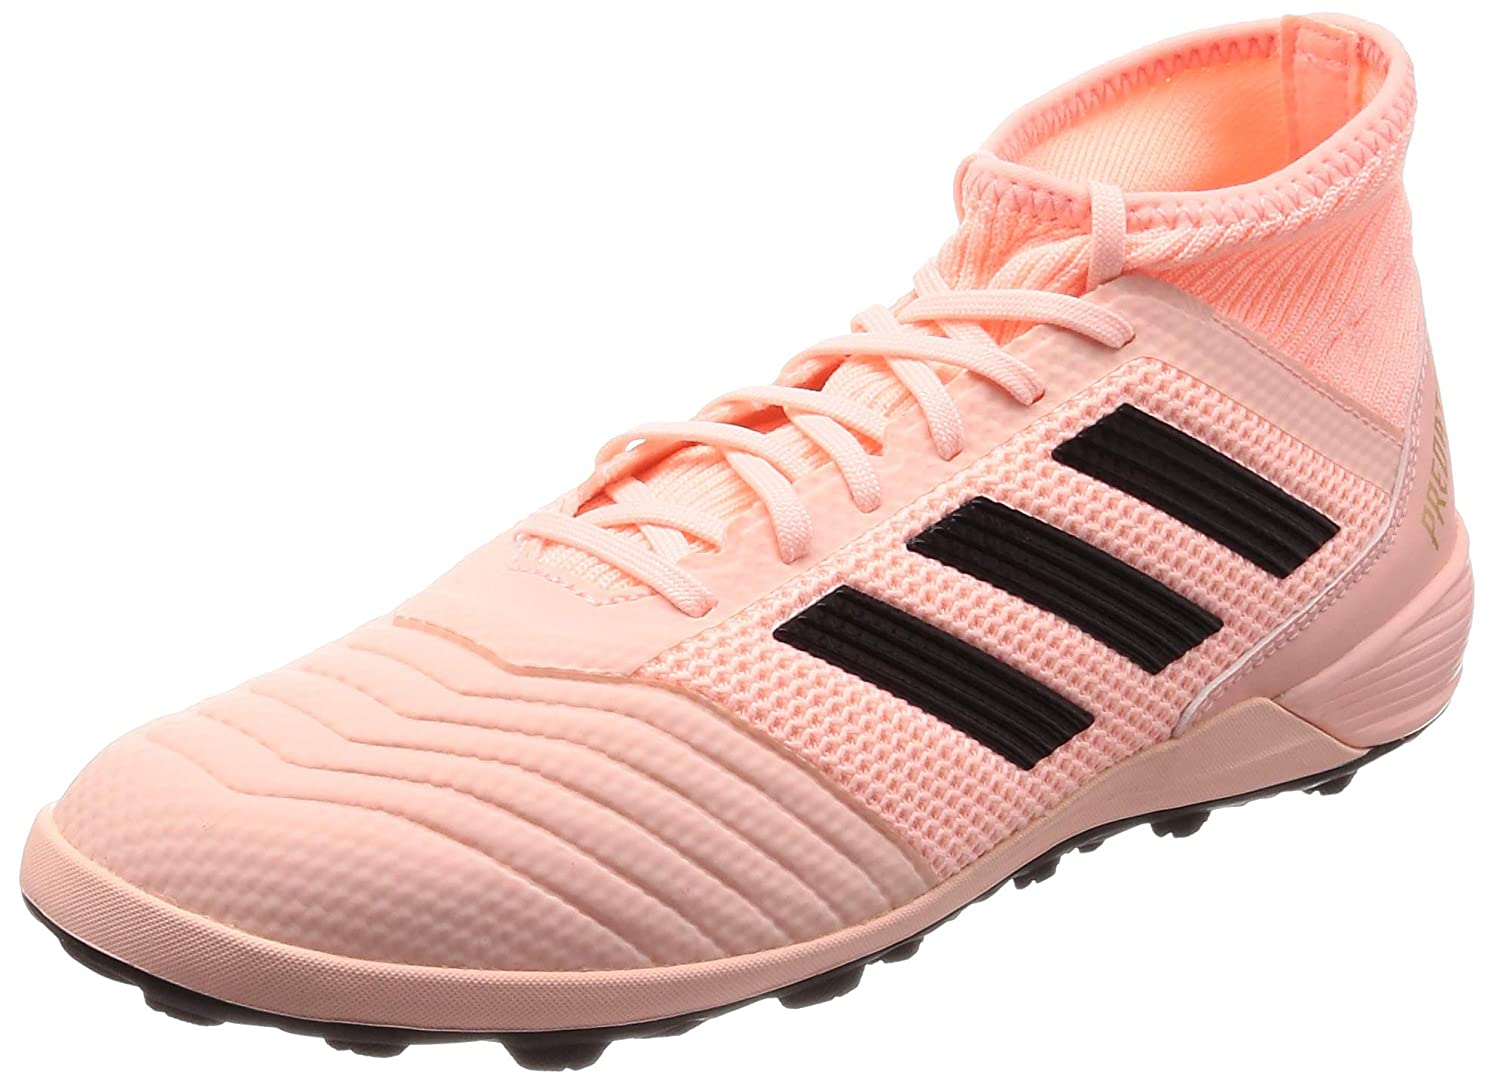 31162ea91a8 adidas Men s Predator Tango 18.3 Tf Football Boots  Amazon.co.uk  Shoes    Bags